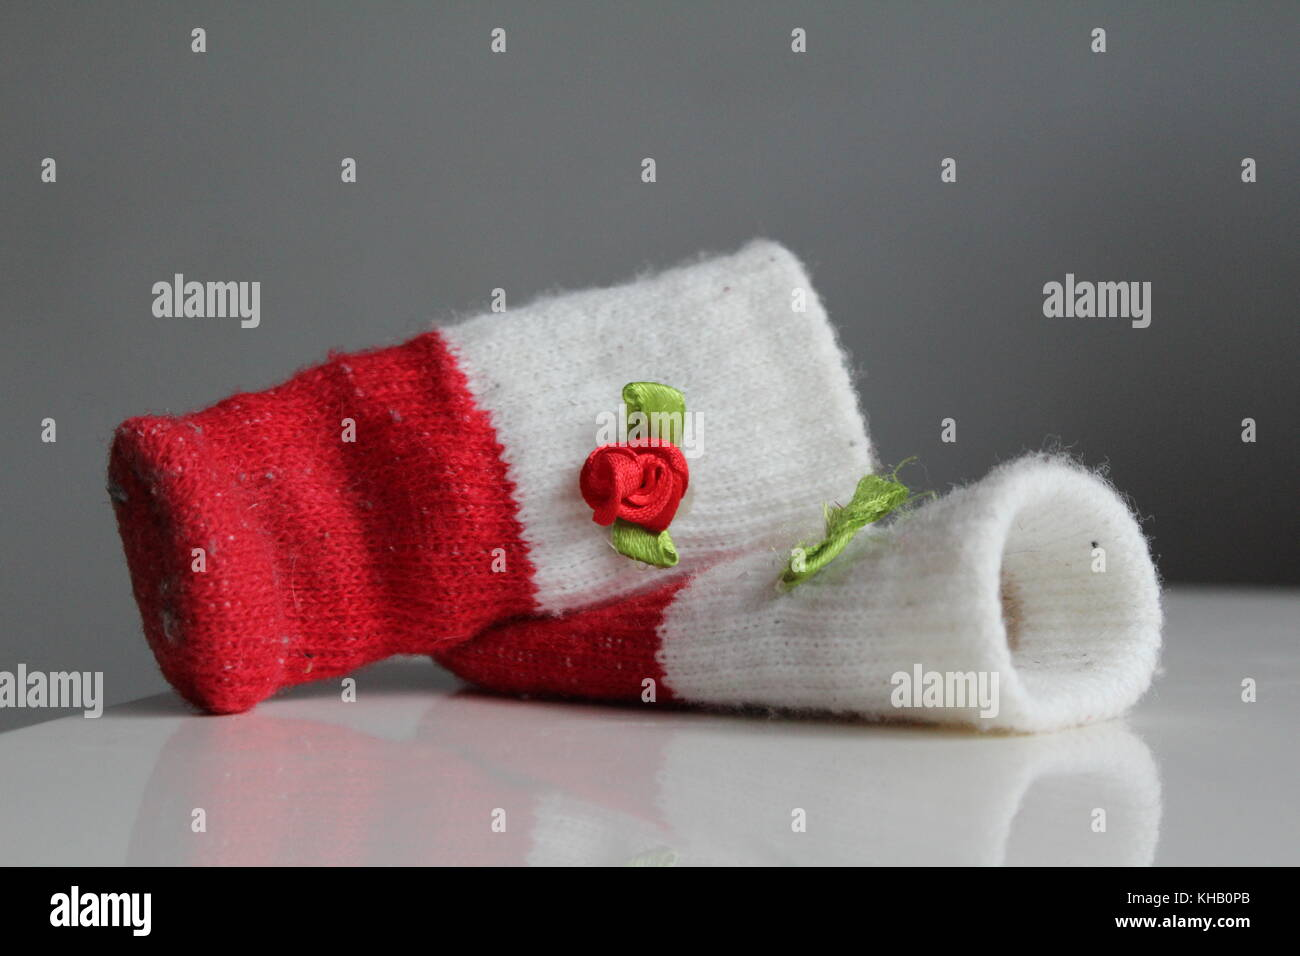 red sock on table - Stock Image